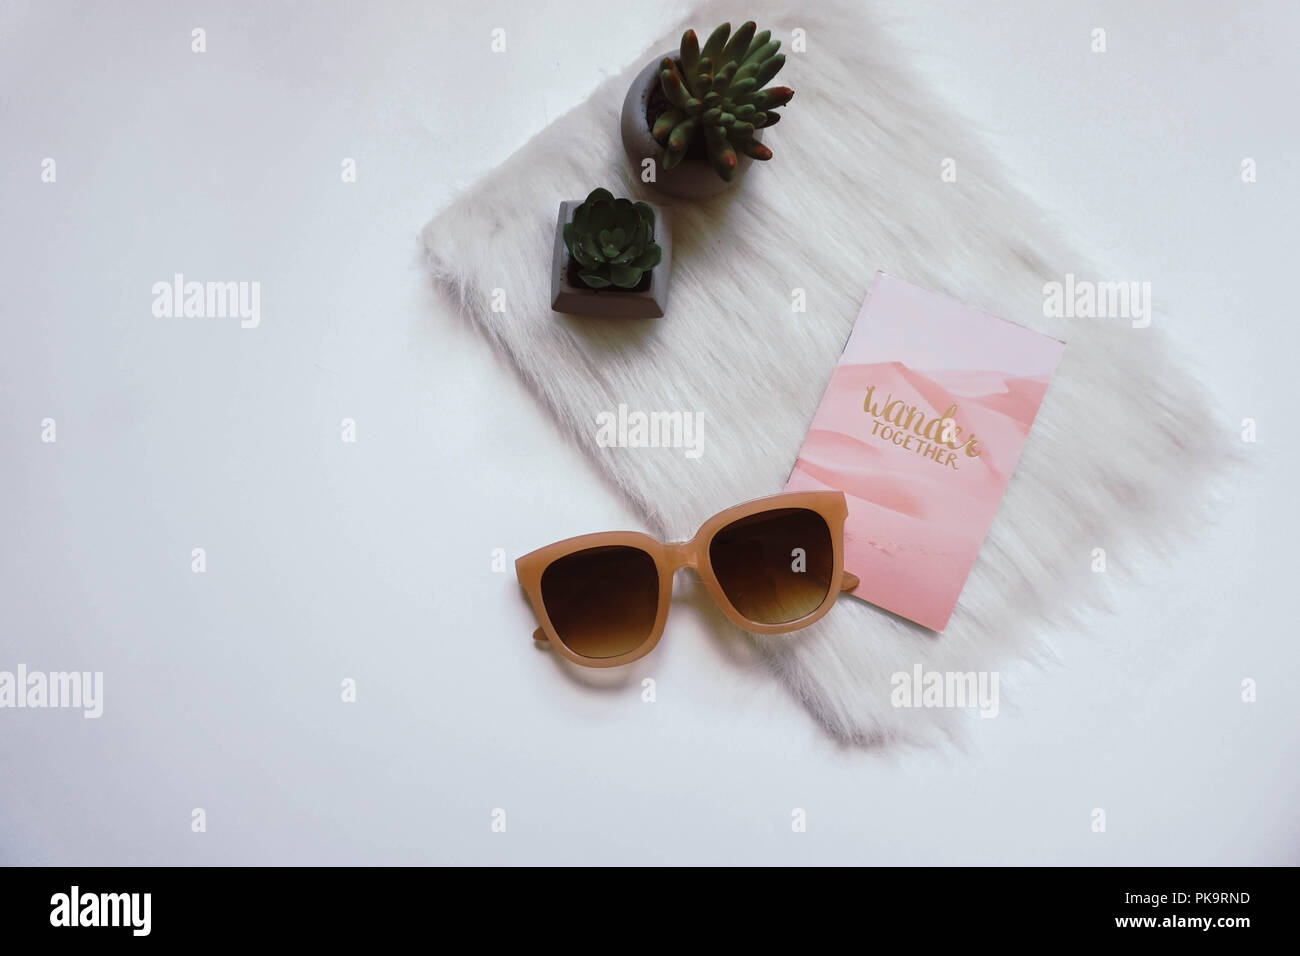 Bright, white flat lay photograph featuring succulents, fur rug, sunglasses, and a wander together notebook. - Stock Image